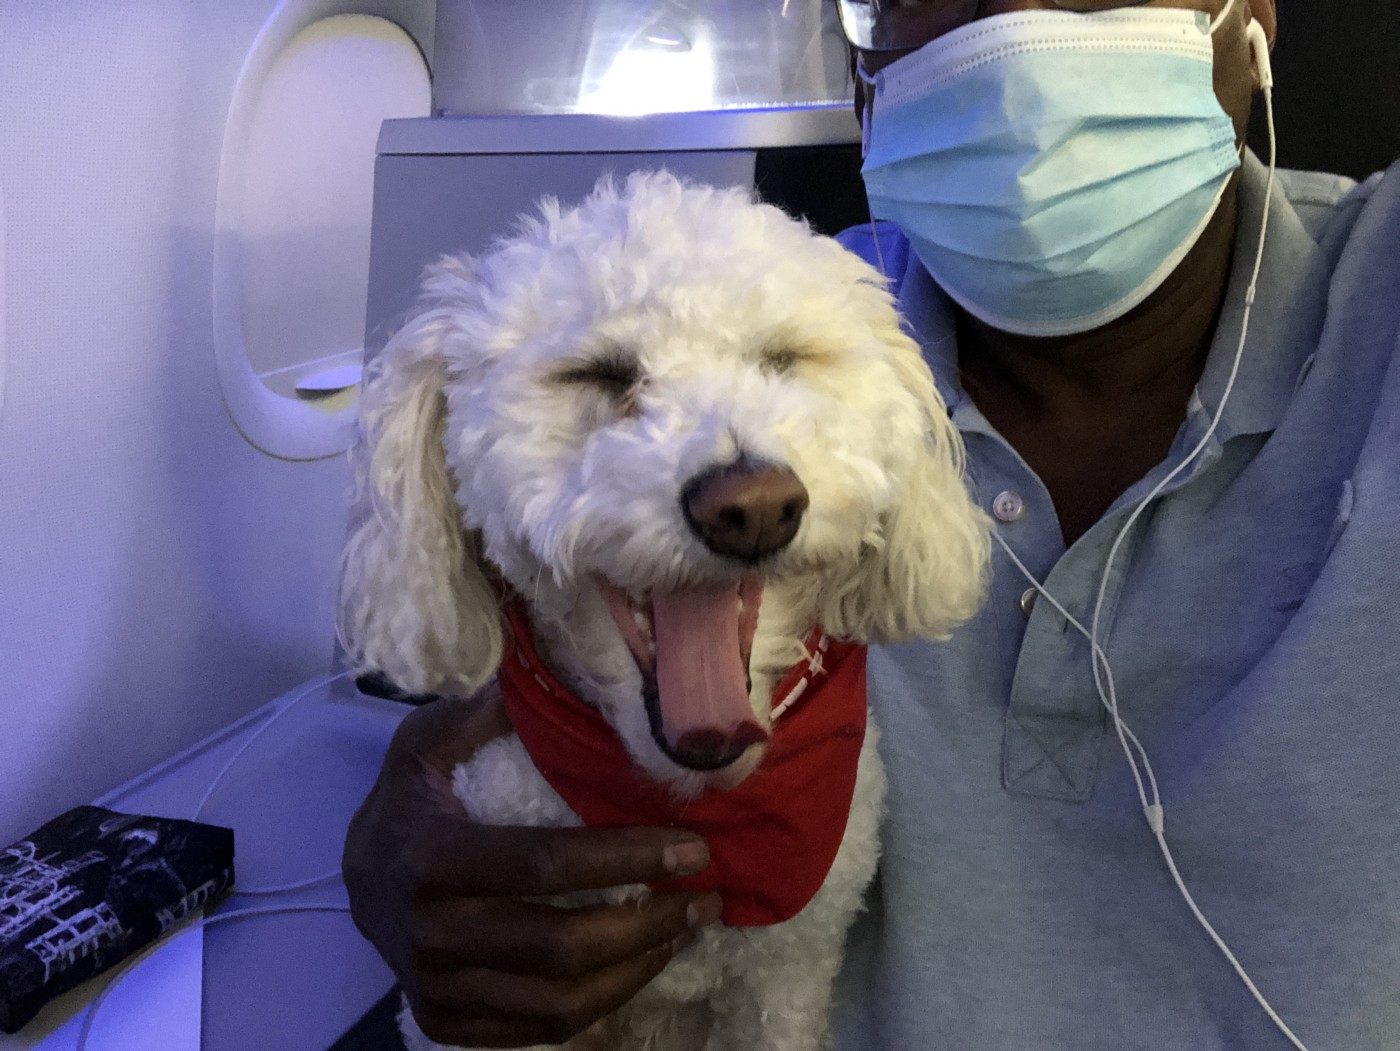 A travel companion who is very happy that the author is taking appropriate travel precautions. Photo by Todd Curtis